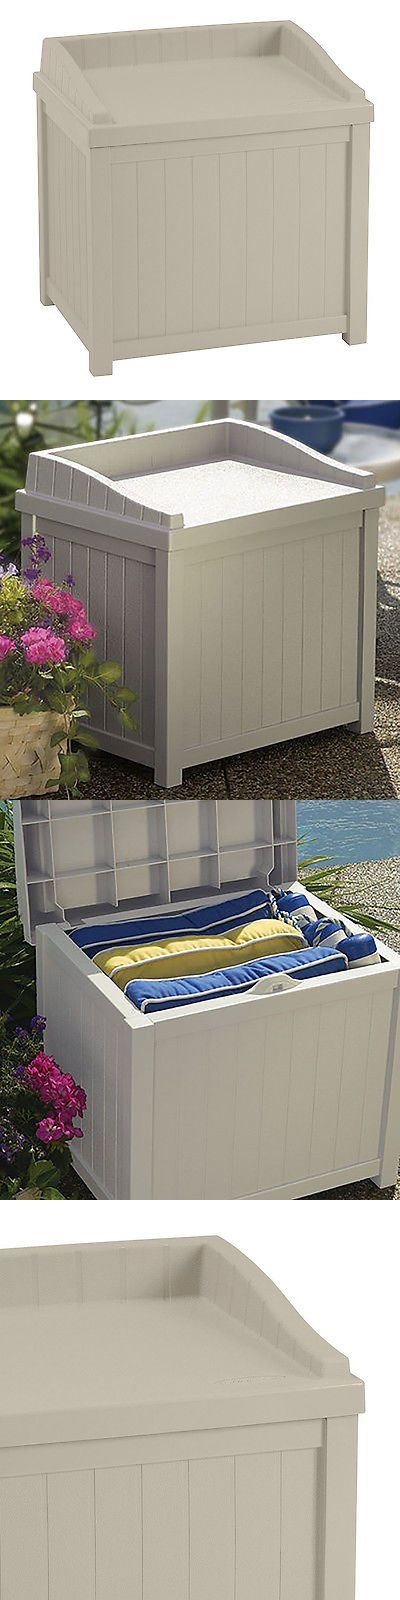 Other Patio and Garden Furniture 10035: Suncast 22 Gallon Outdoor Storage Resin Patio Deck Box With Seat, Tan | Ss1000a -> BUY IT NOW ONLY: $42.99 on eBay!